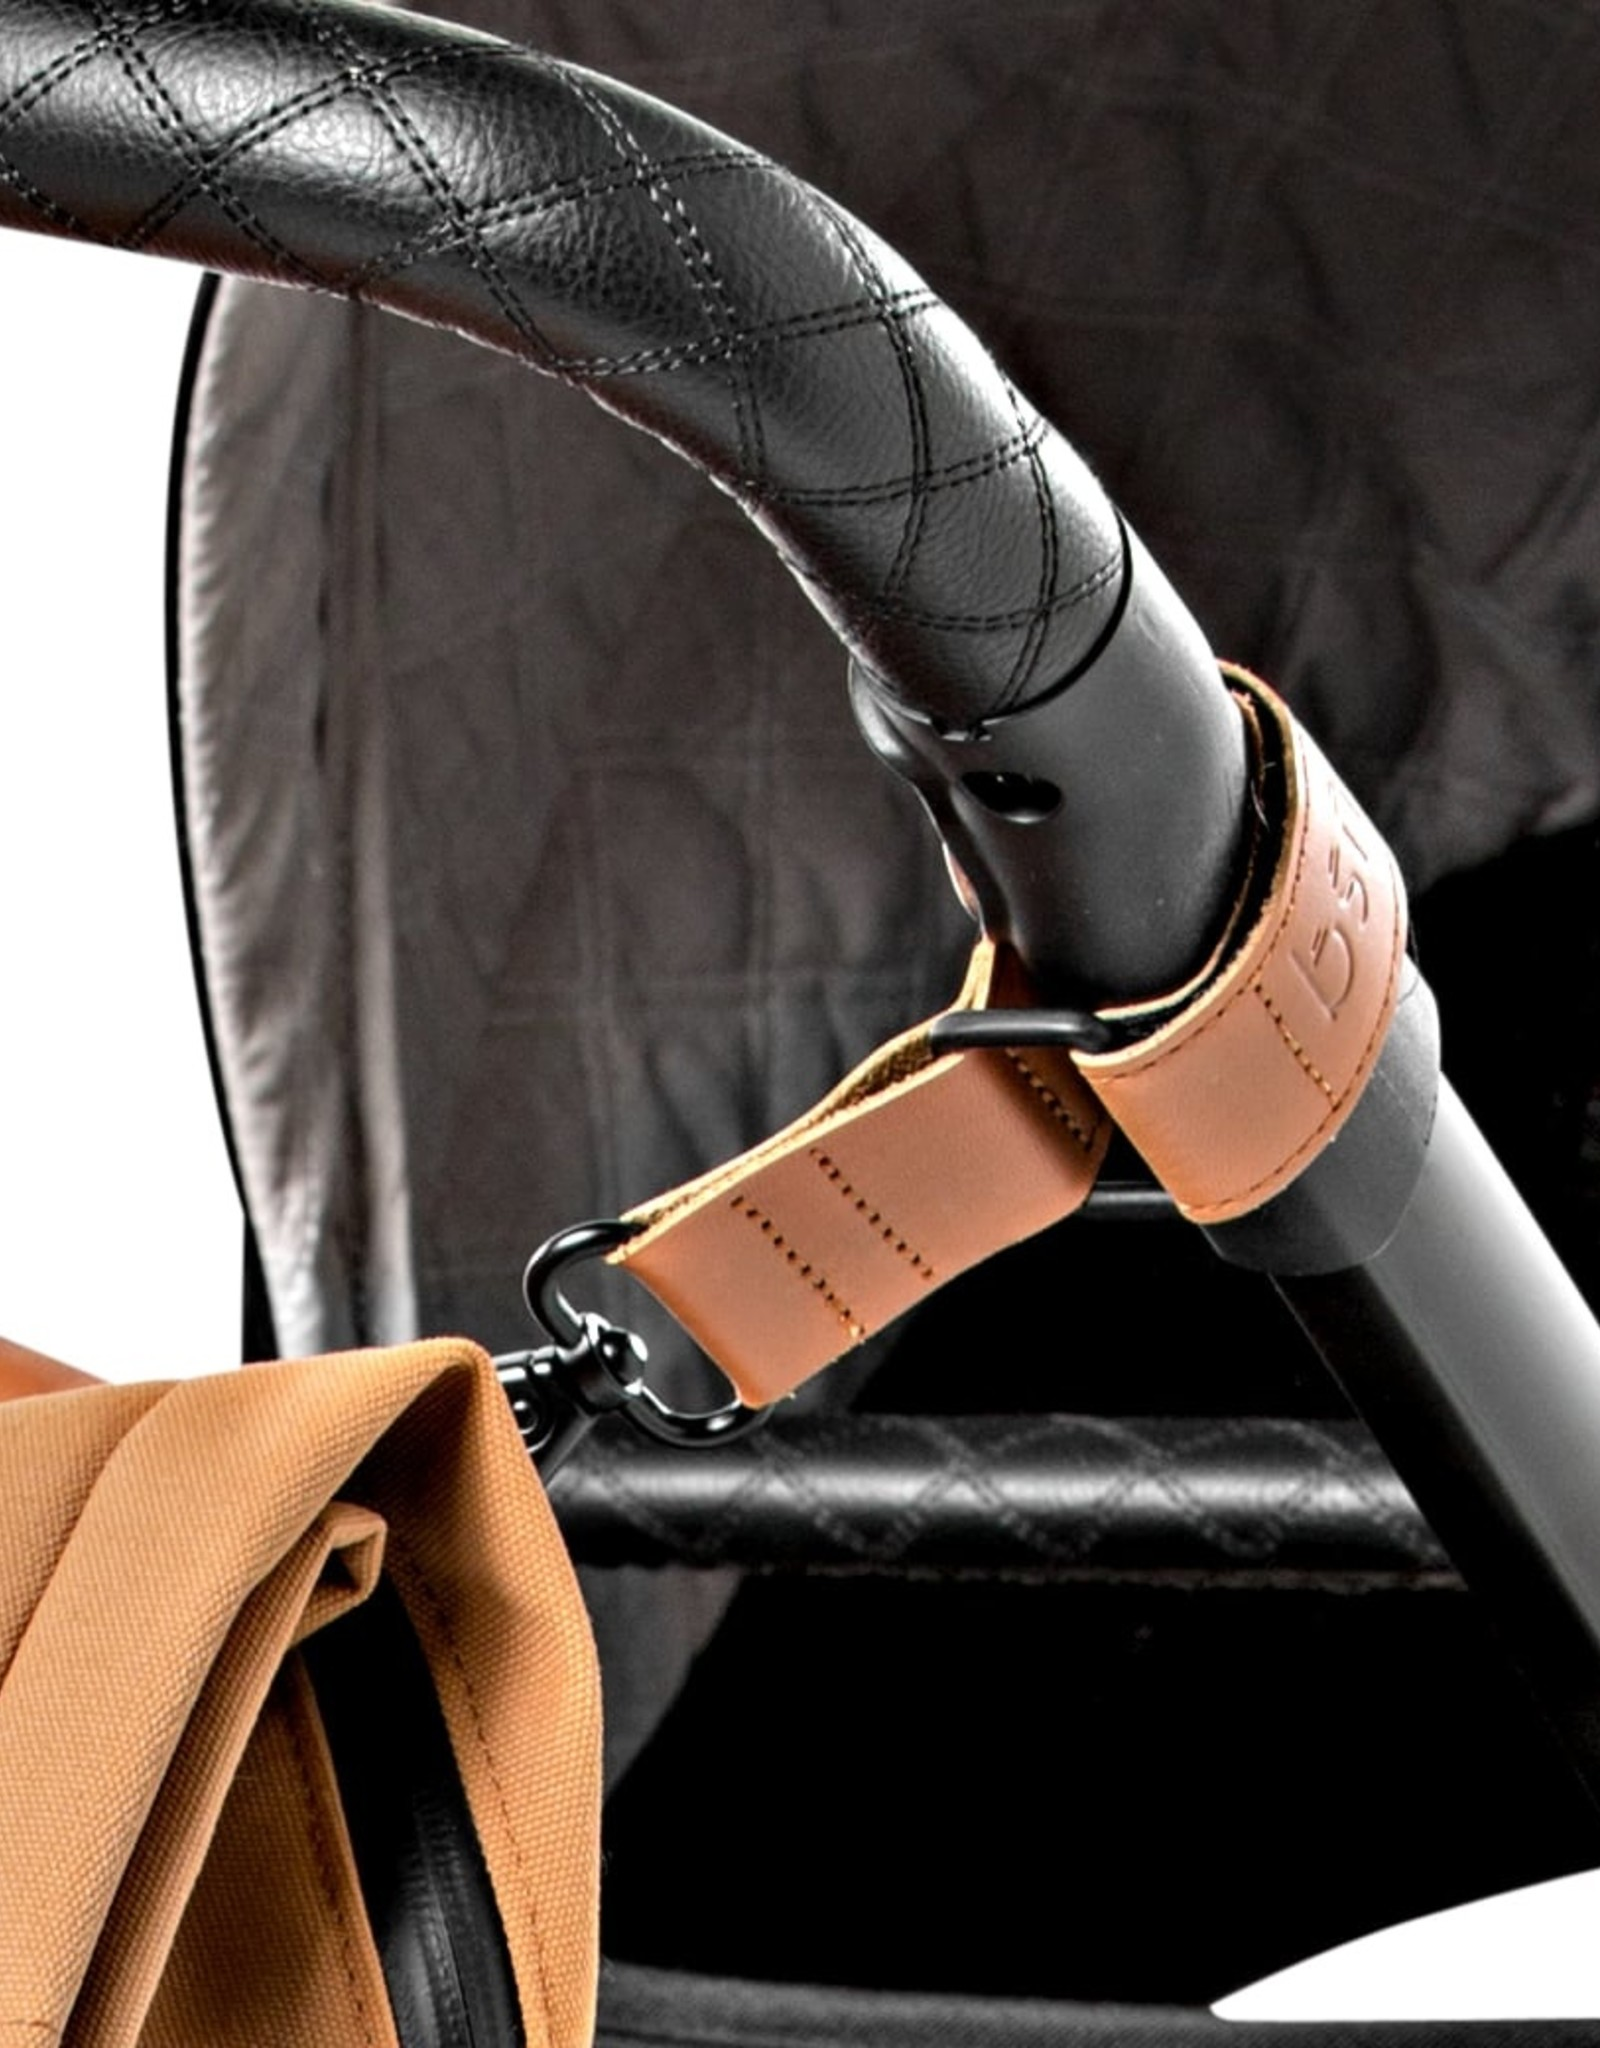 Dusq Dusq stroller straps sunset cognac leather